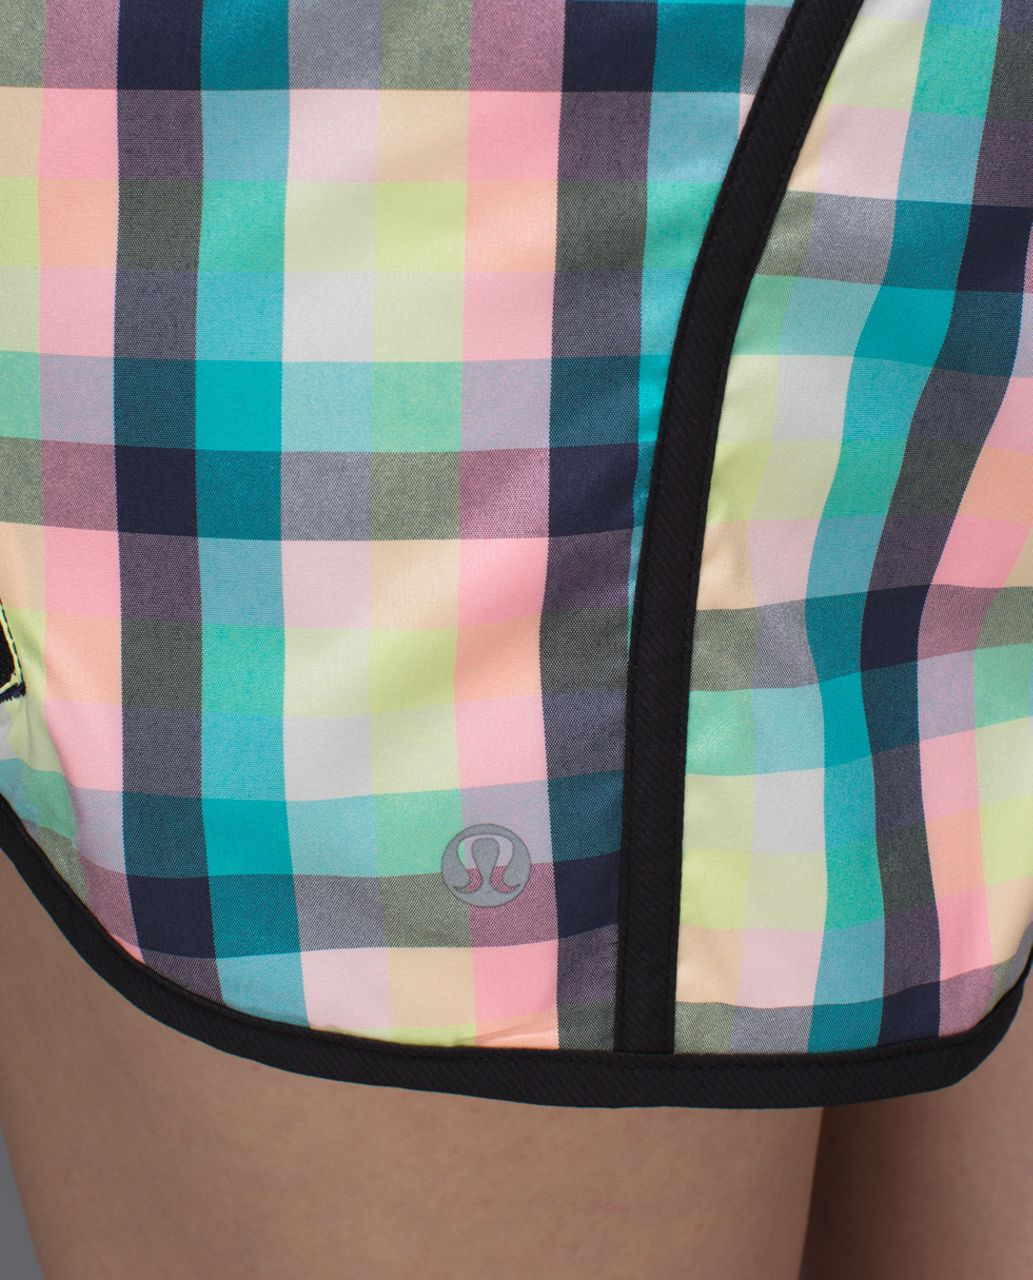 Lululemon Tracker Short II *2-way Stretch - Wee Wheezy Check Bleached Coral Cadet Blue / Black